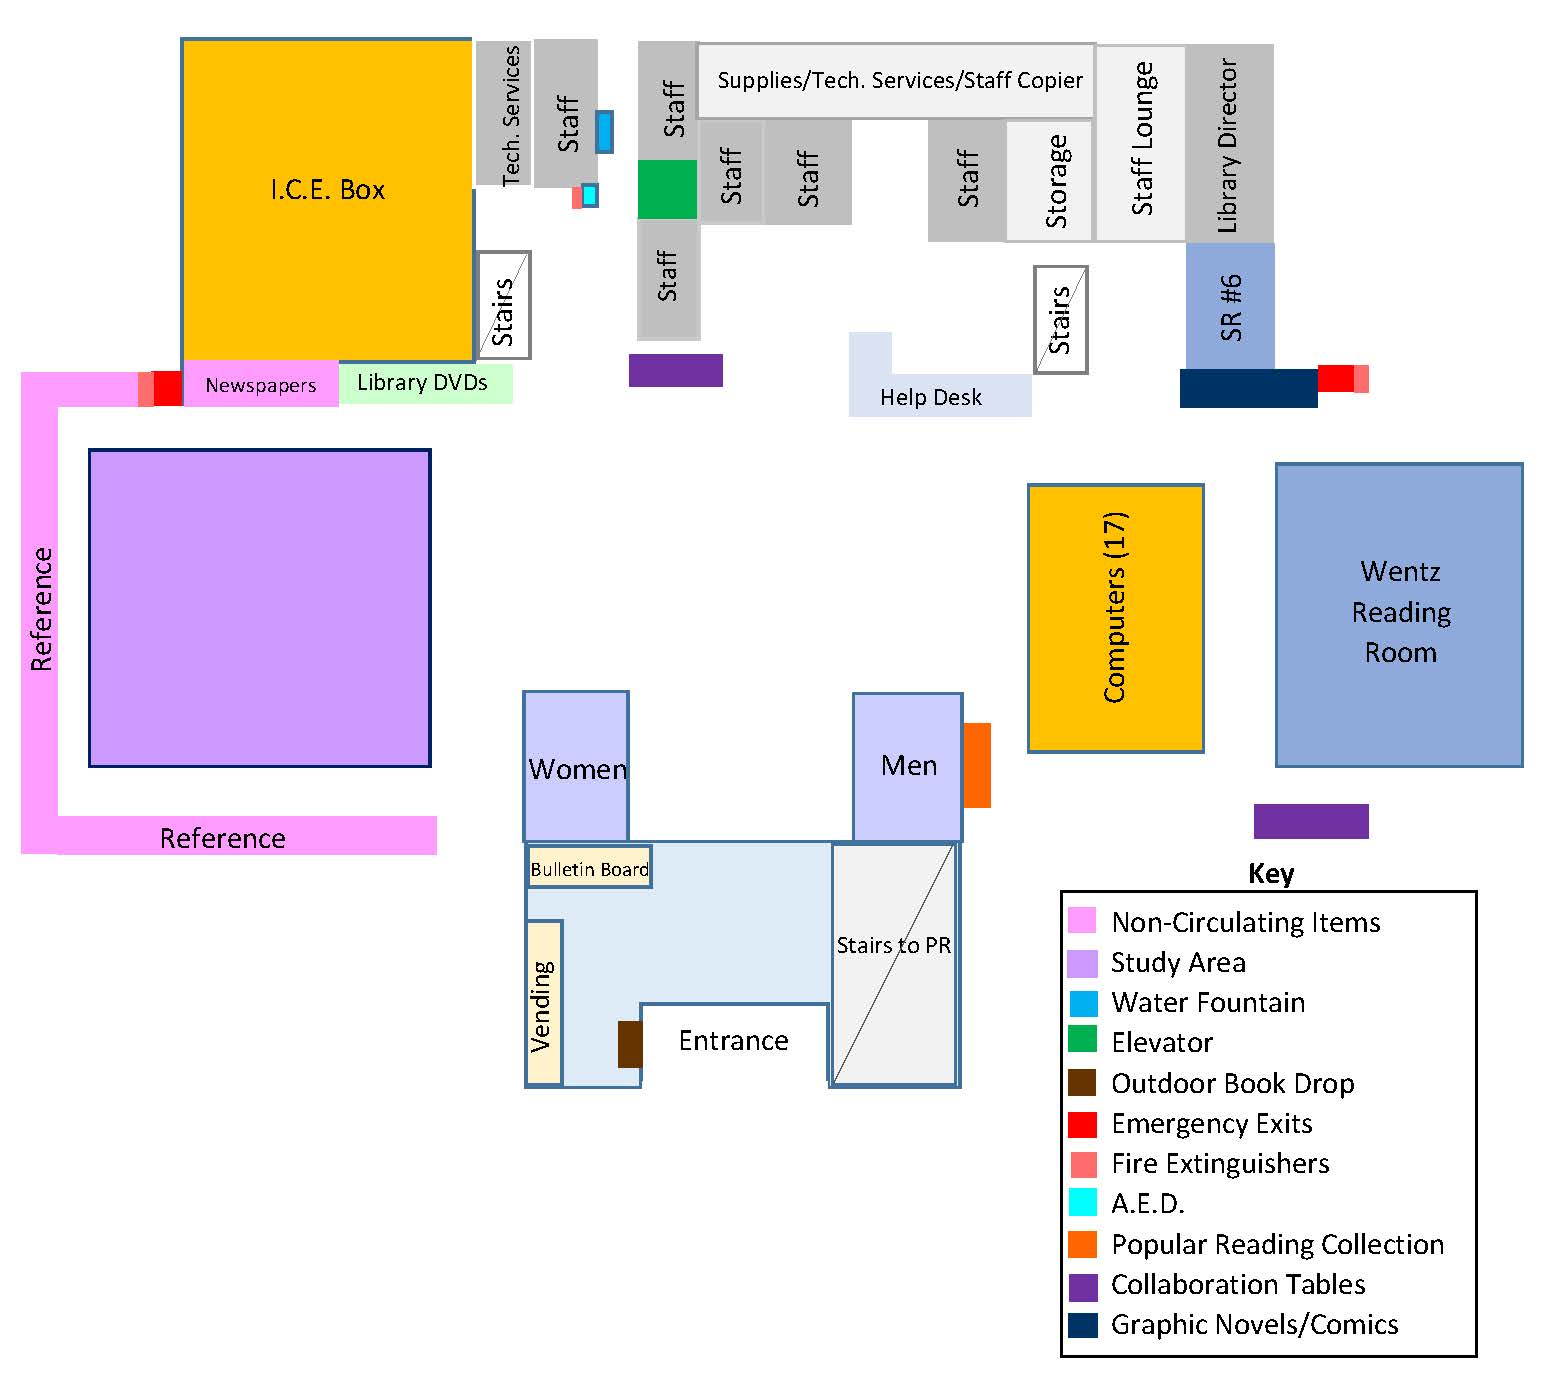 Main Floor Map